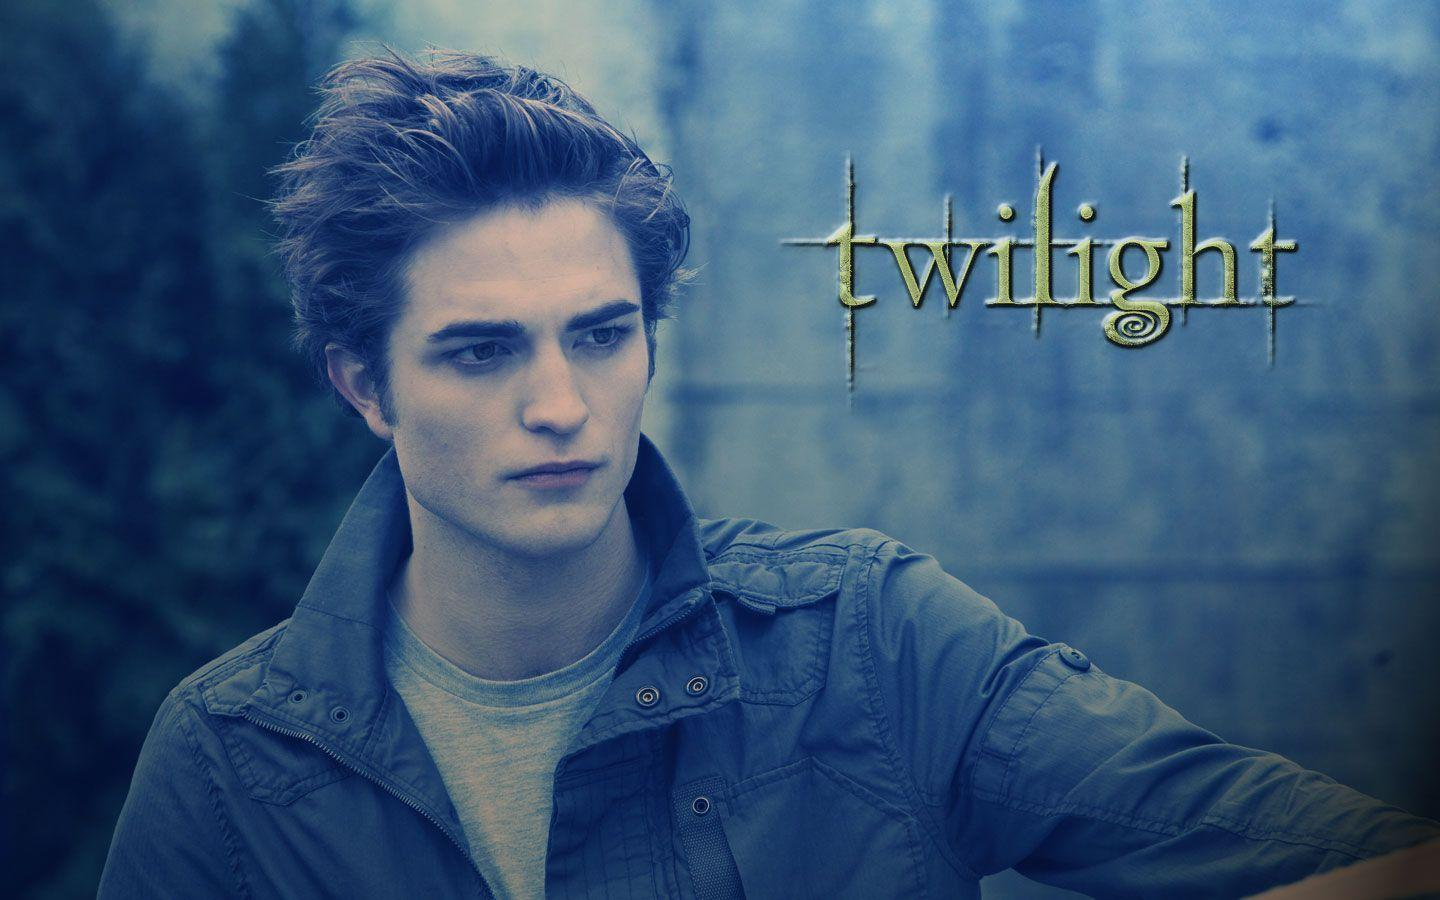 Twilight Edward Cullen Wallpapers Wallpaper Cave